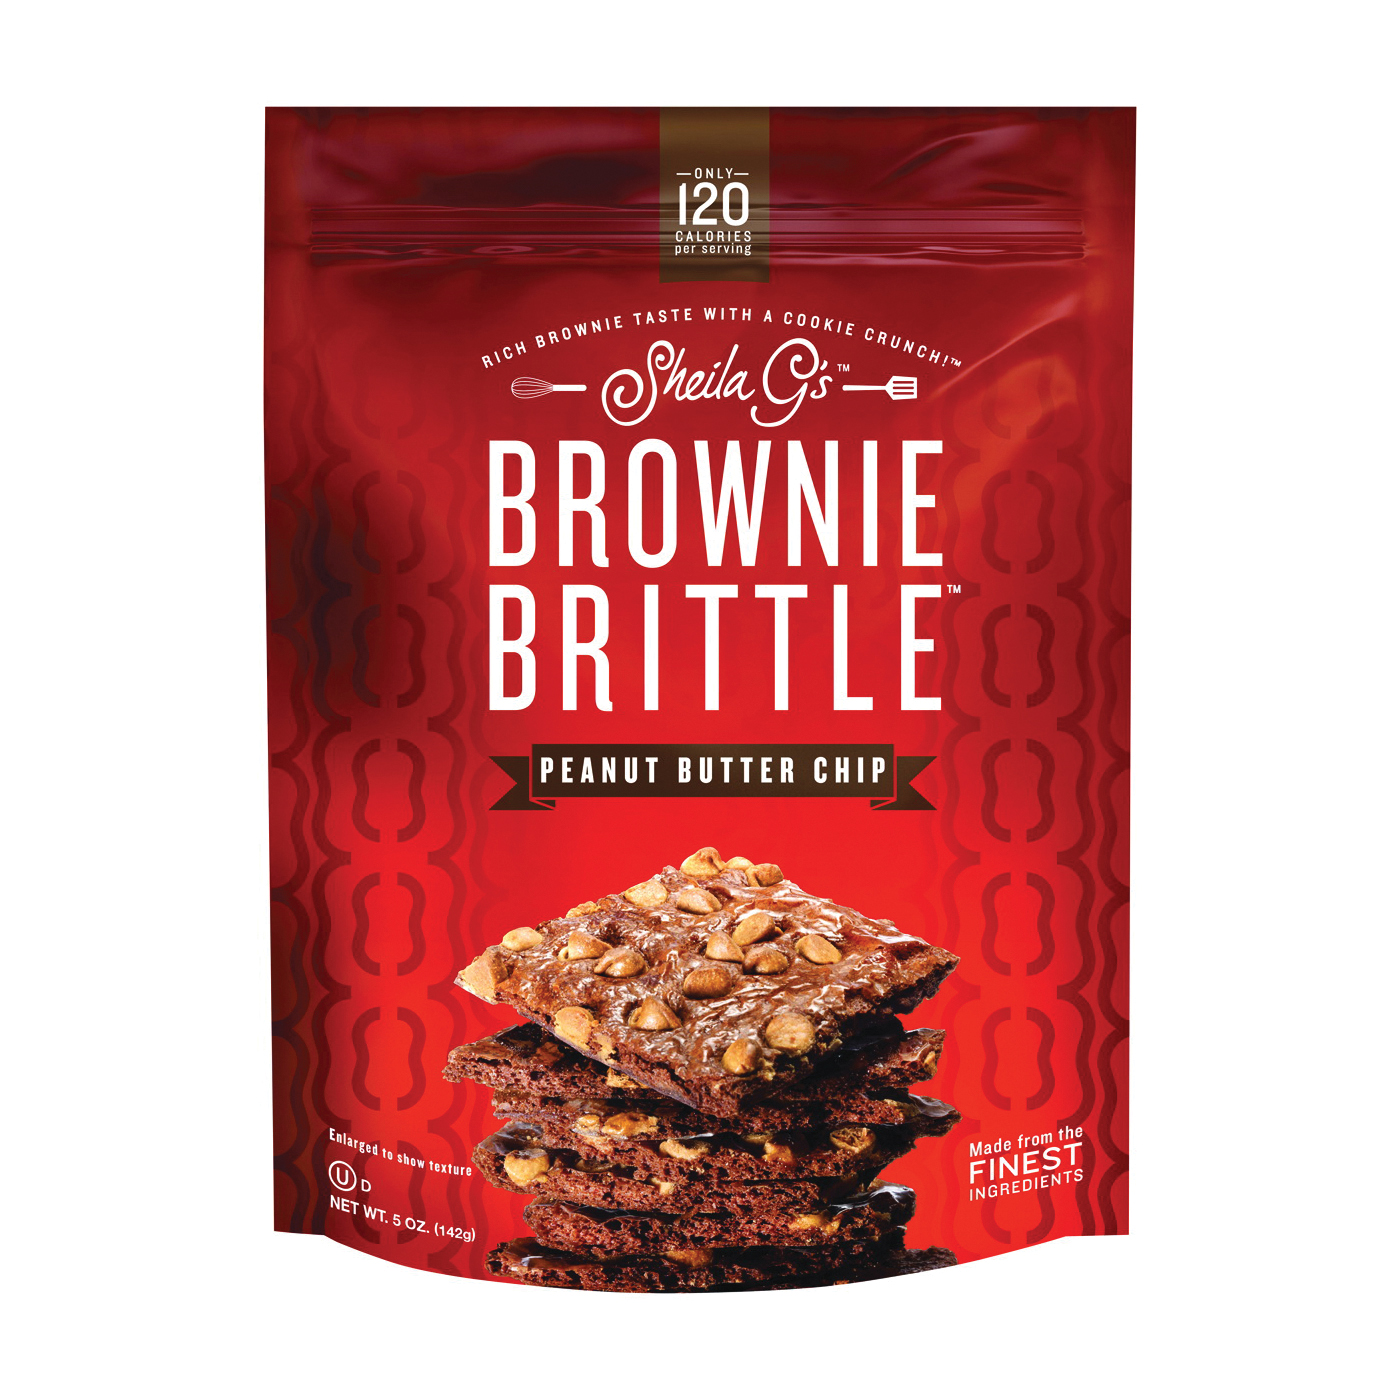 BROWNIE BRITTLE SG1210